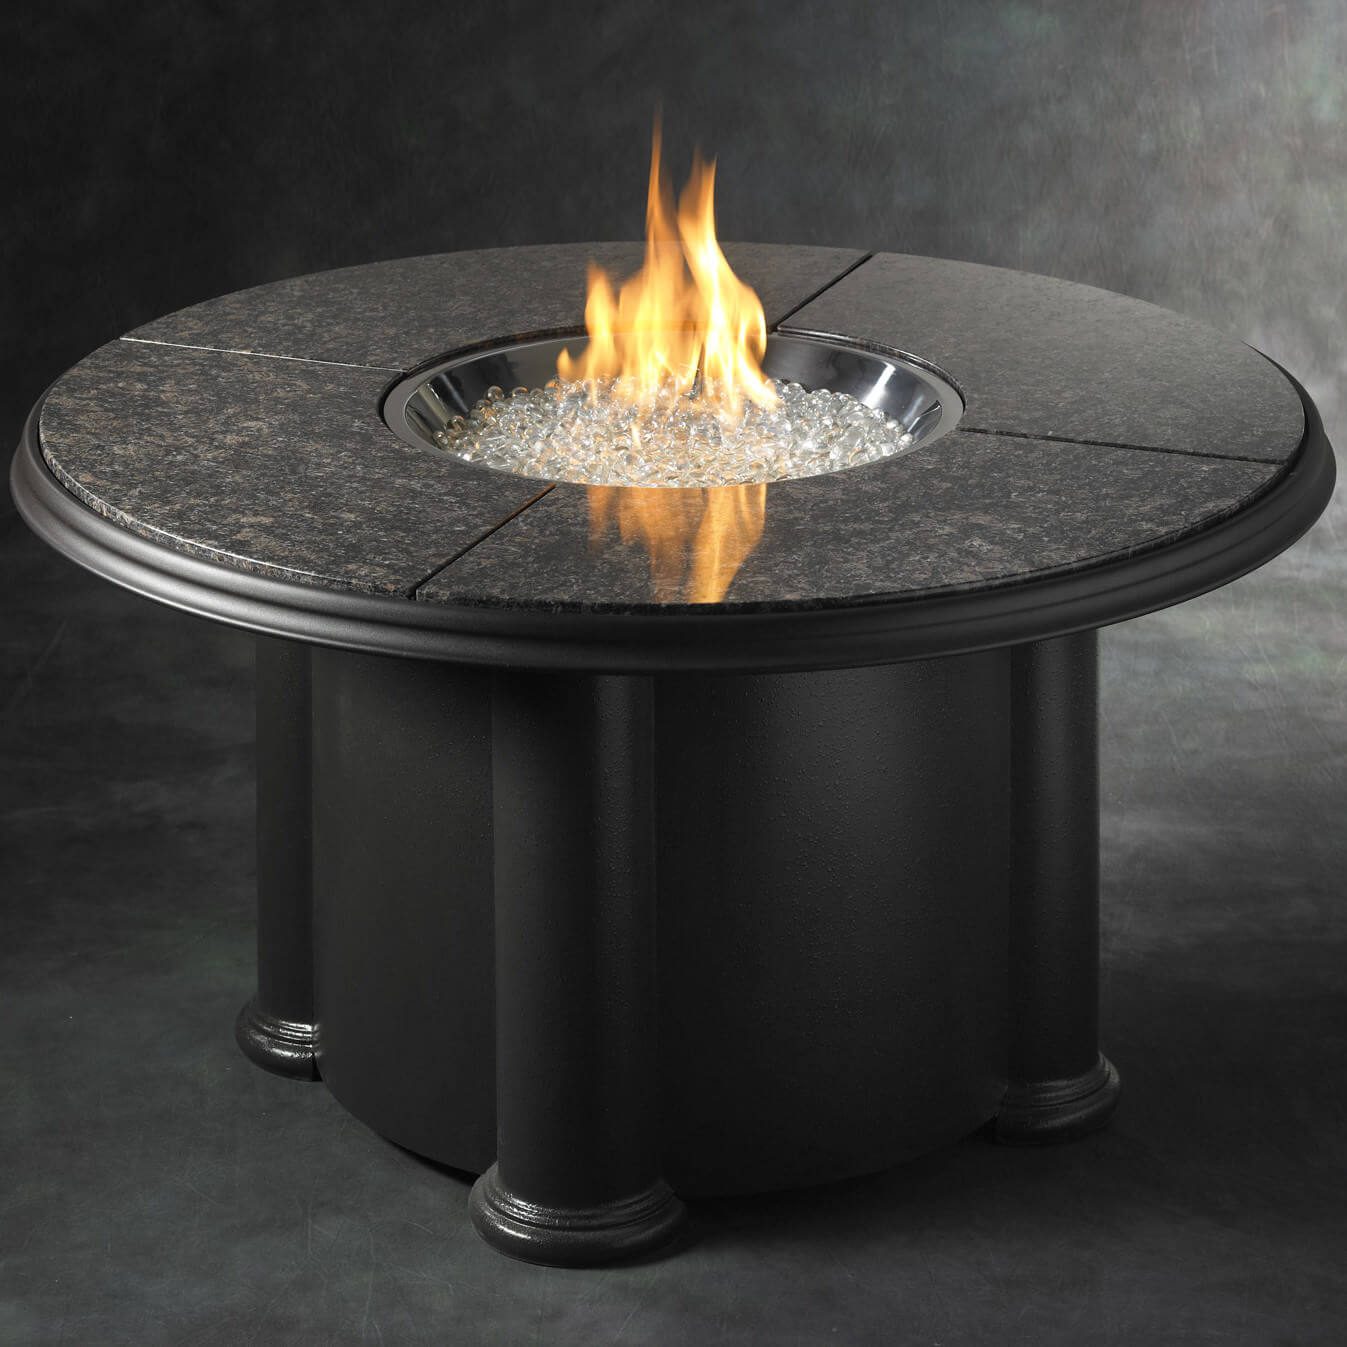 Classic is always the best and this black granite round table that reminds you of a Romanesque touch. It is made with stainless steel construction and has a heat capacity of over 60,000 BTUs. The crystals used for the fire pit are also of high quality and its controls are electronic so you can adjust your settings easily. It is perfect for indoor use.